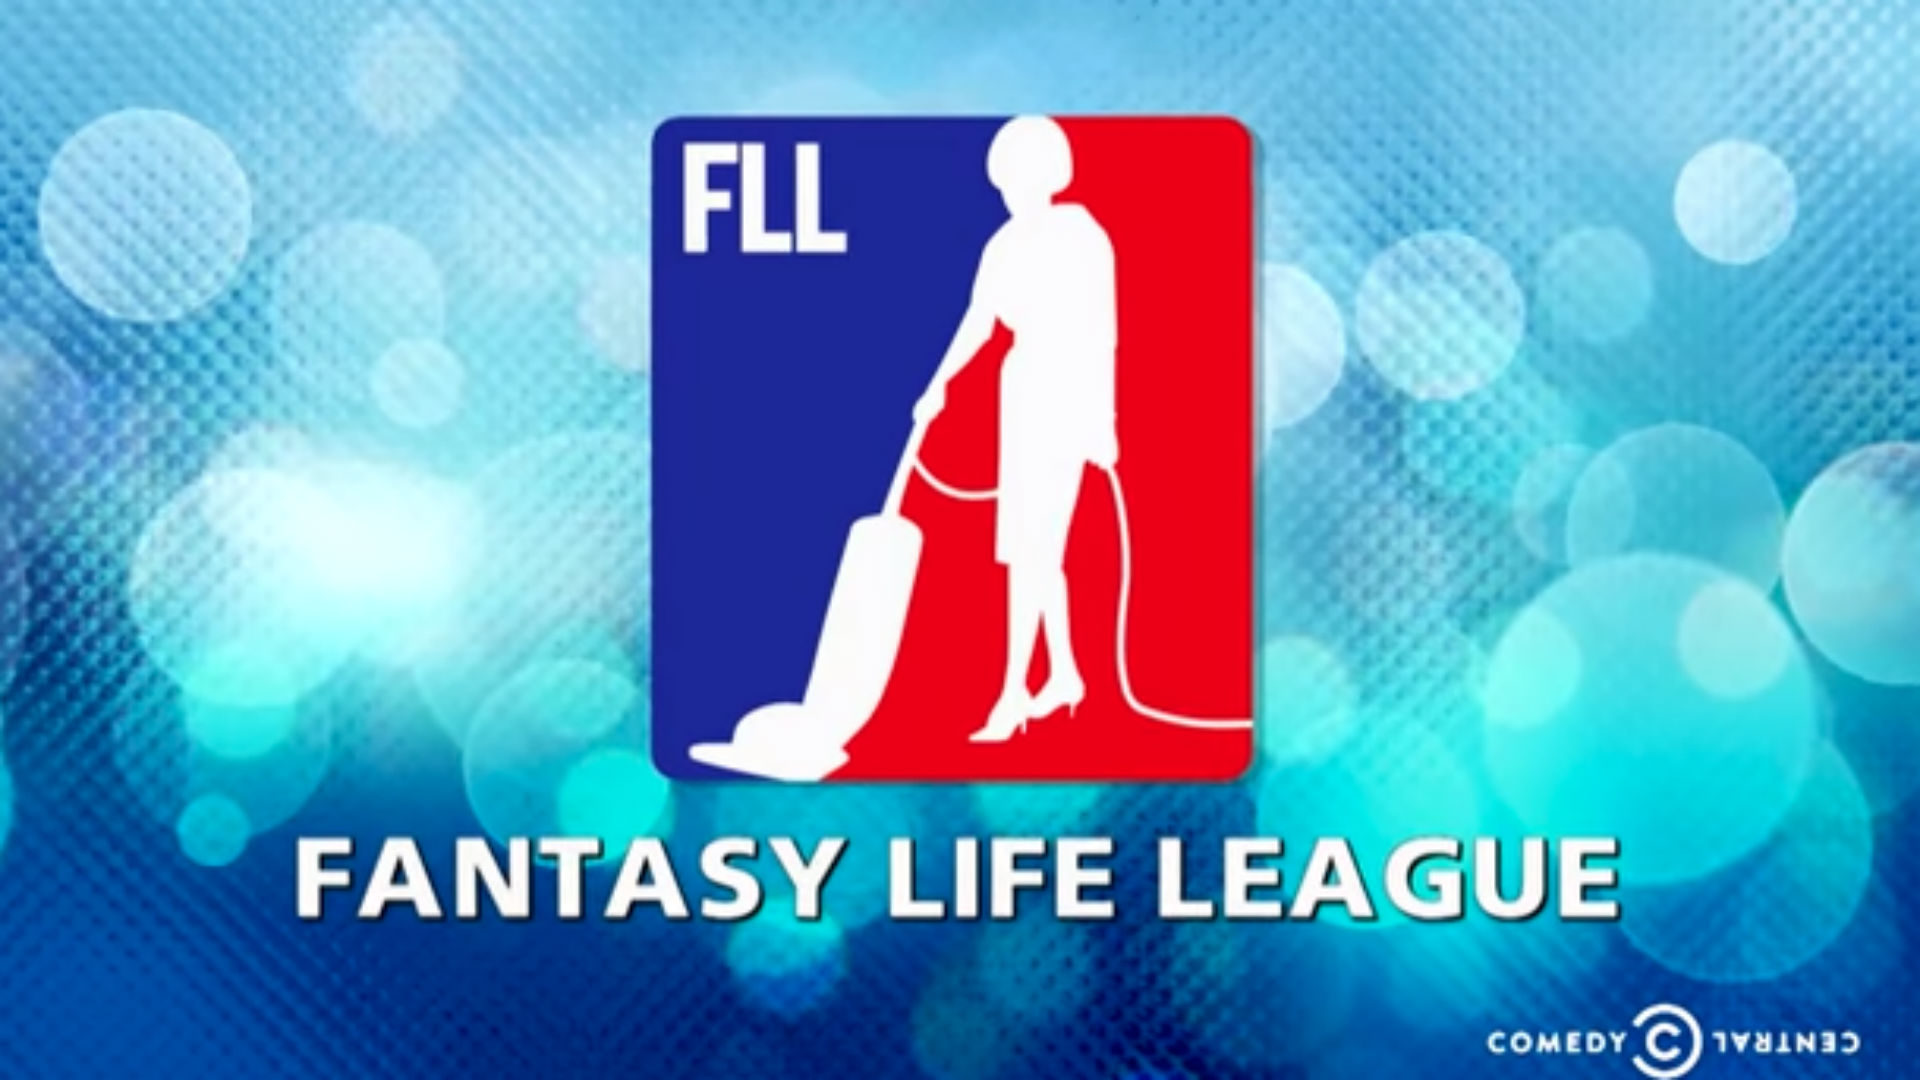 Comedy Central, Hannibal Buress' 'Fantasy Life League' needs to be become a reality